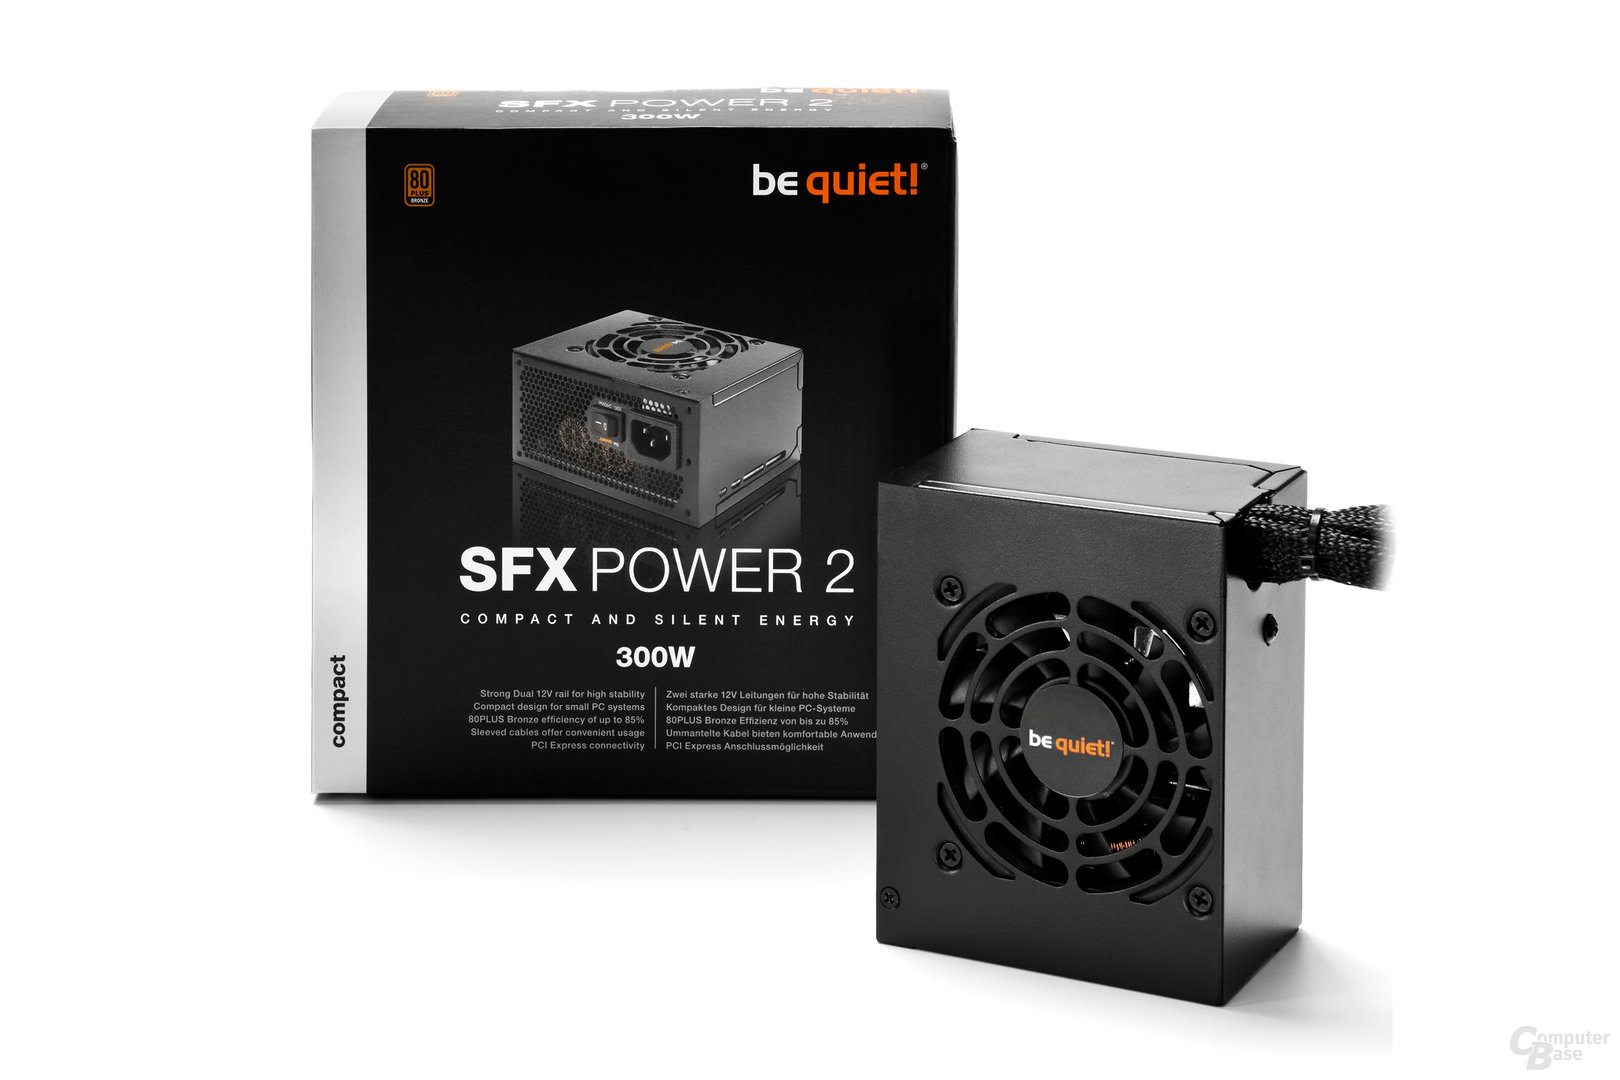 be quiet! SFX Power 2